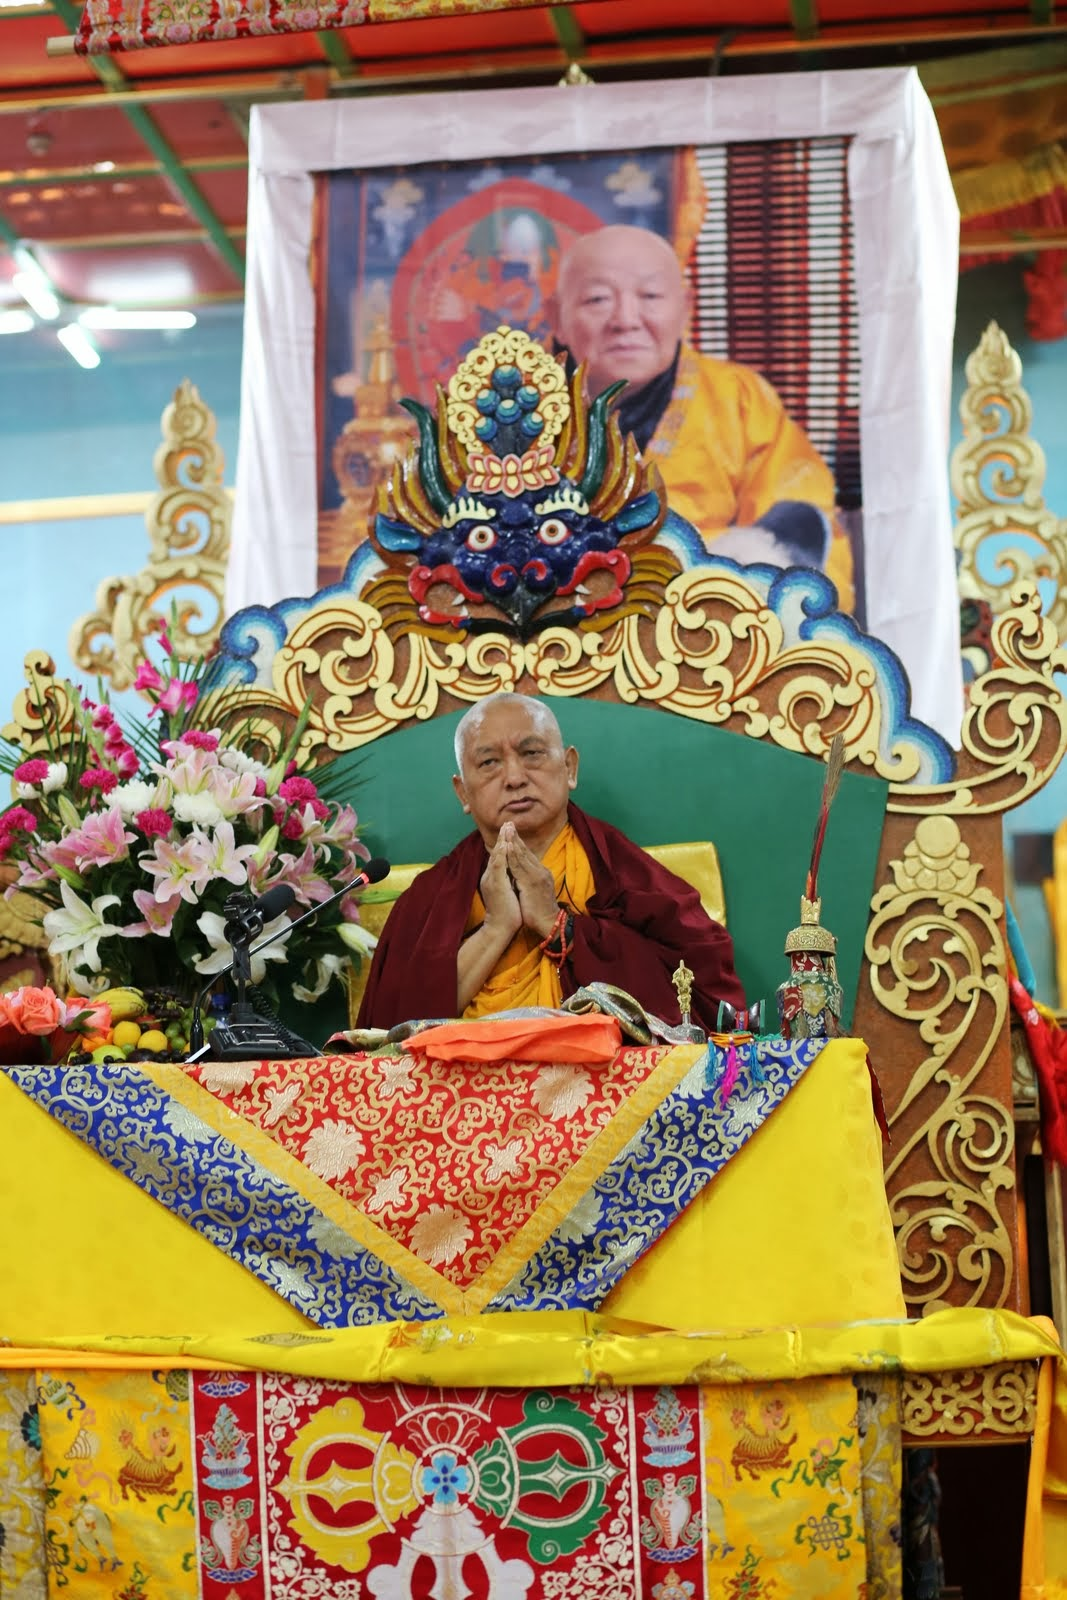 August 2013: Lama Zopa Rinpoche teaching at the 100 Million Mani Retreat in Mongolia.